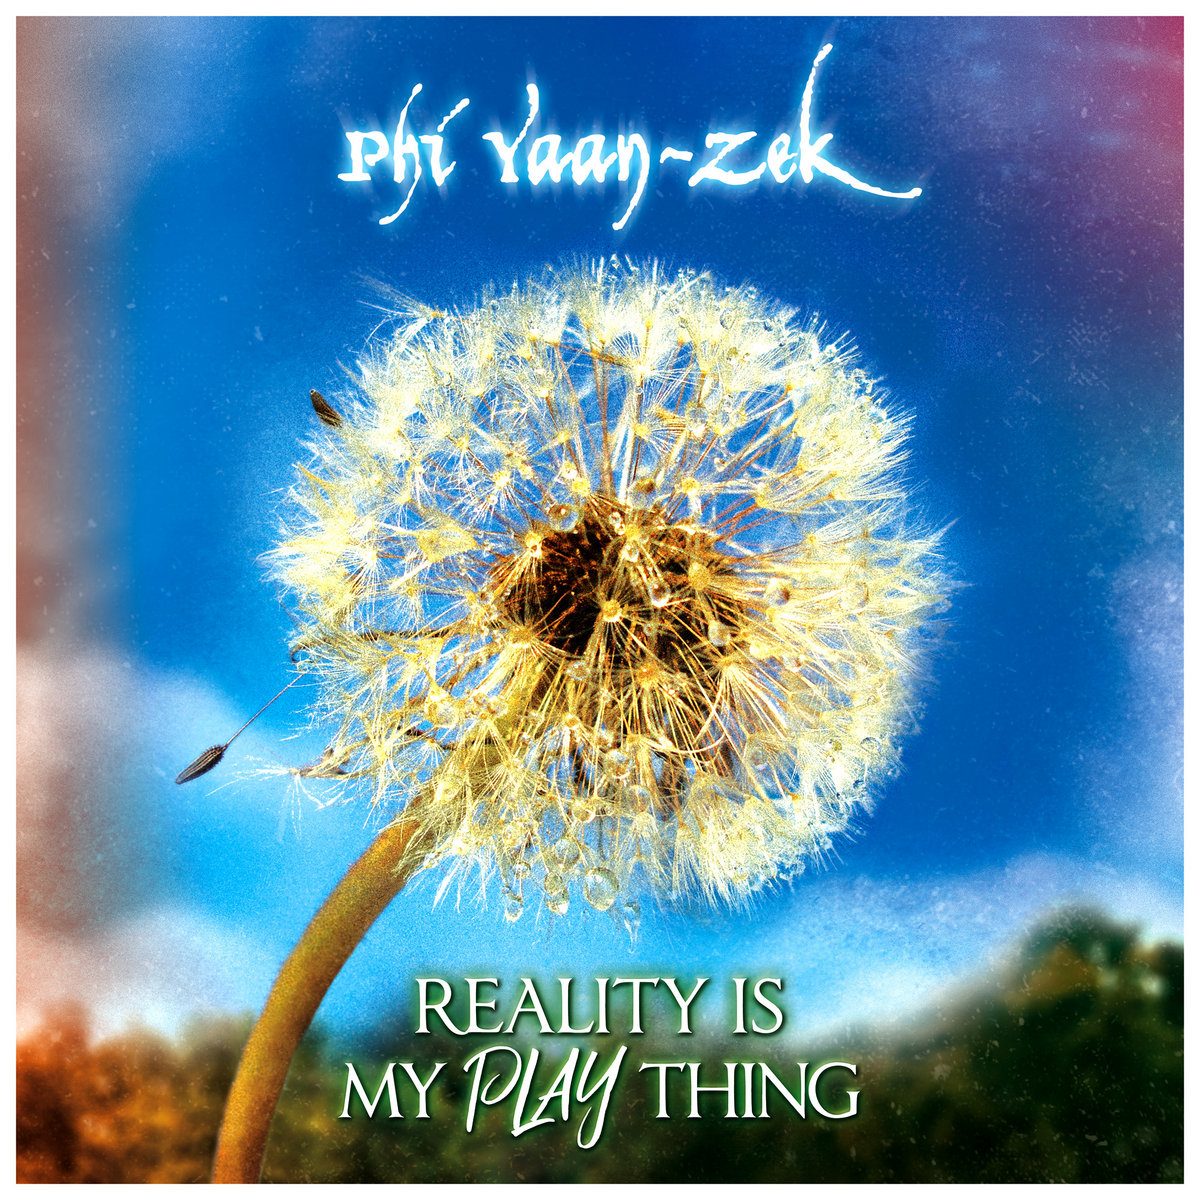 Reality Is My Play Thing (Double Album) | Phi Yaan-Zek